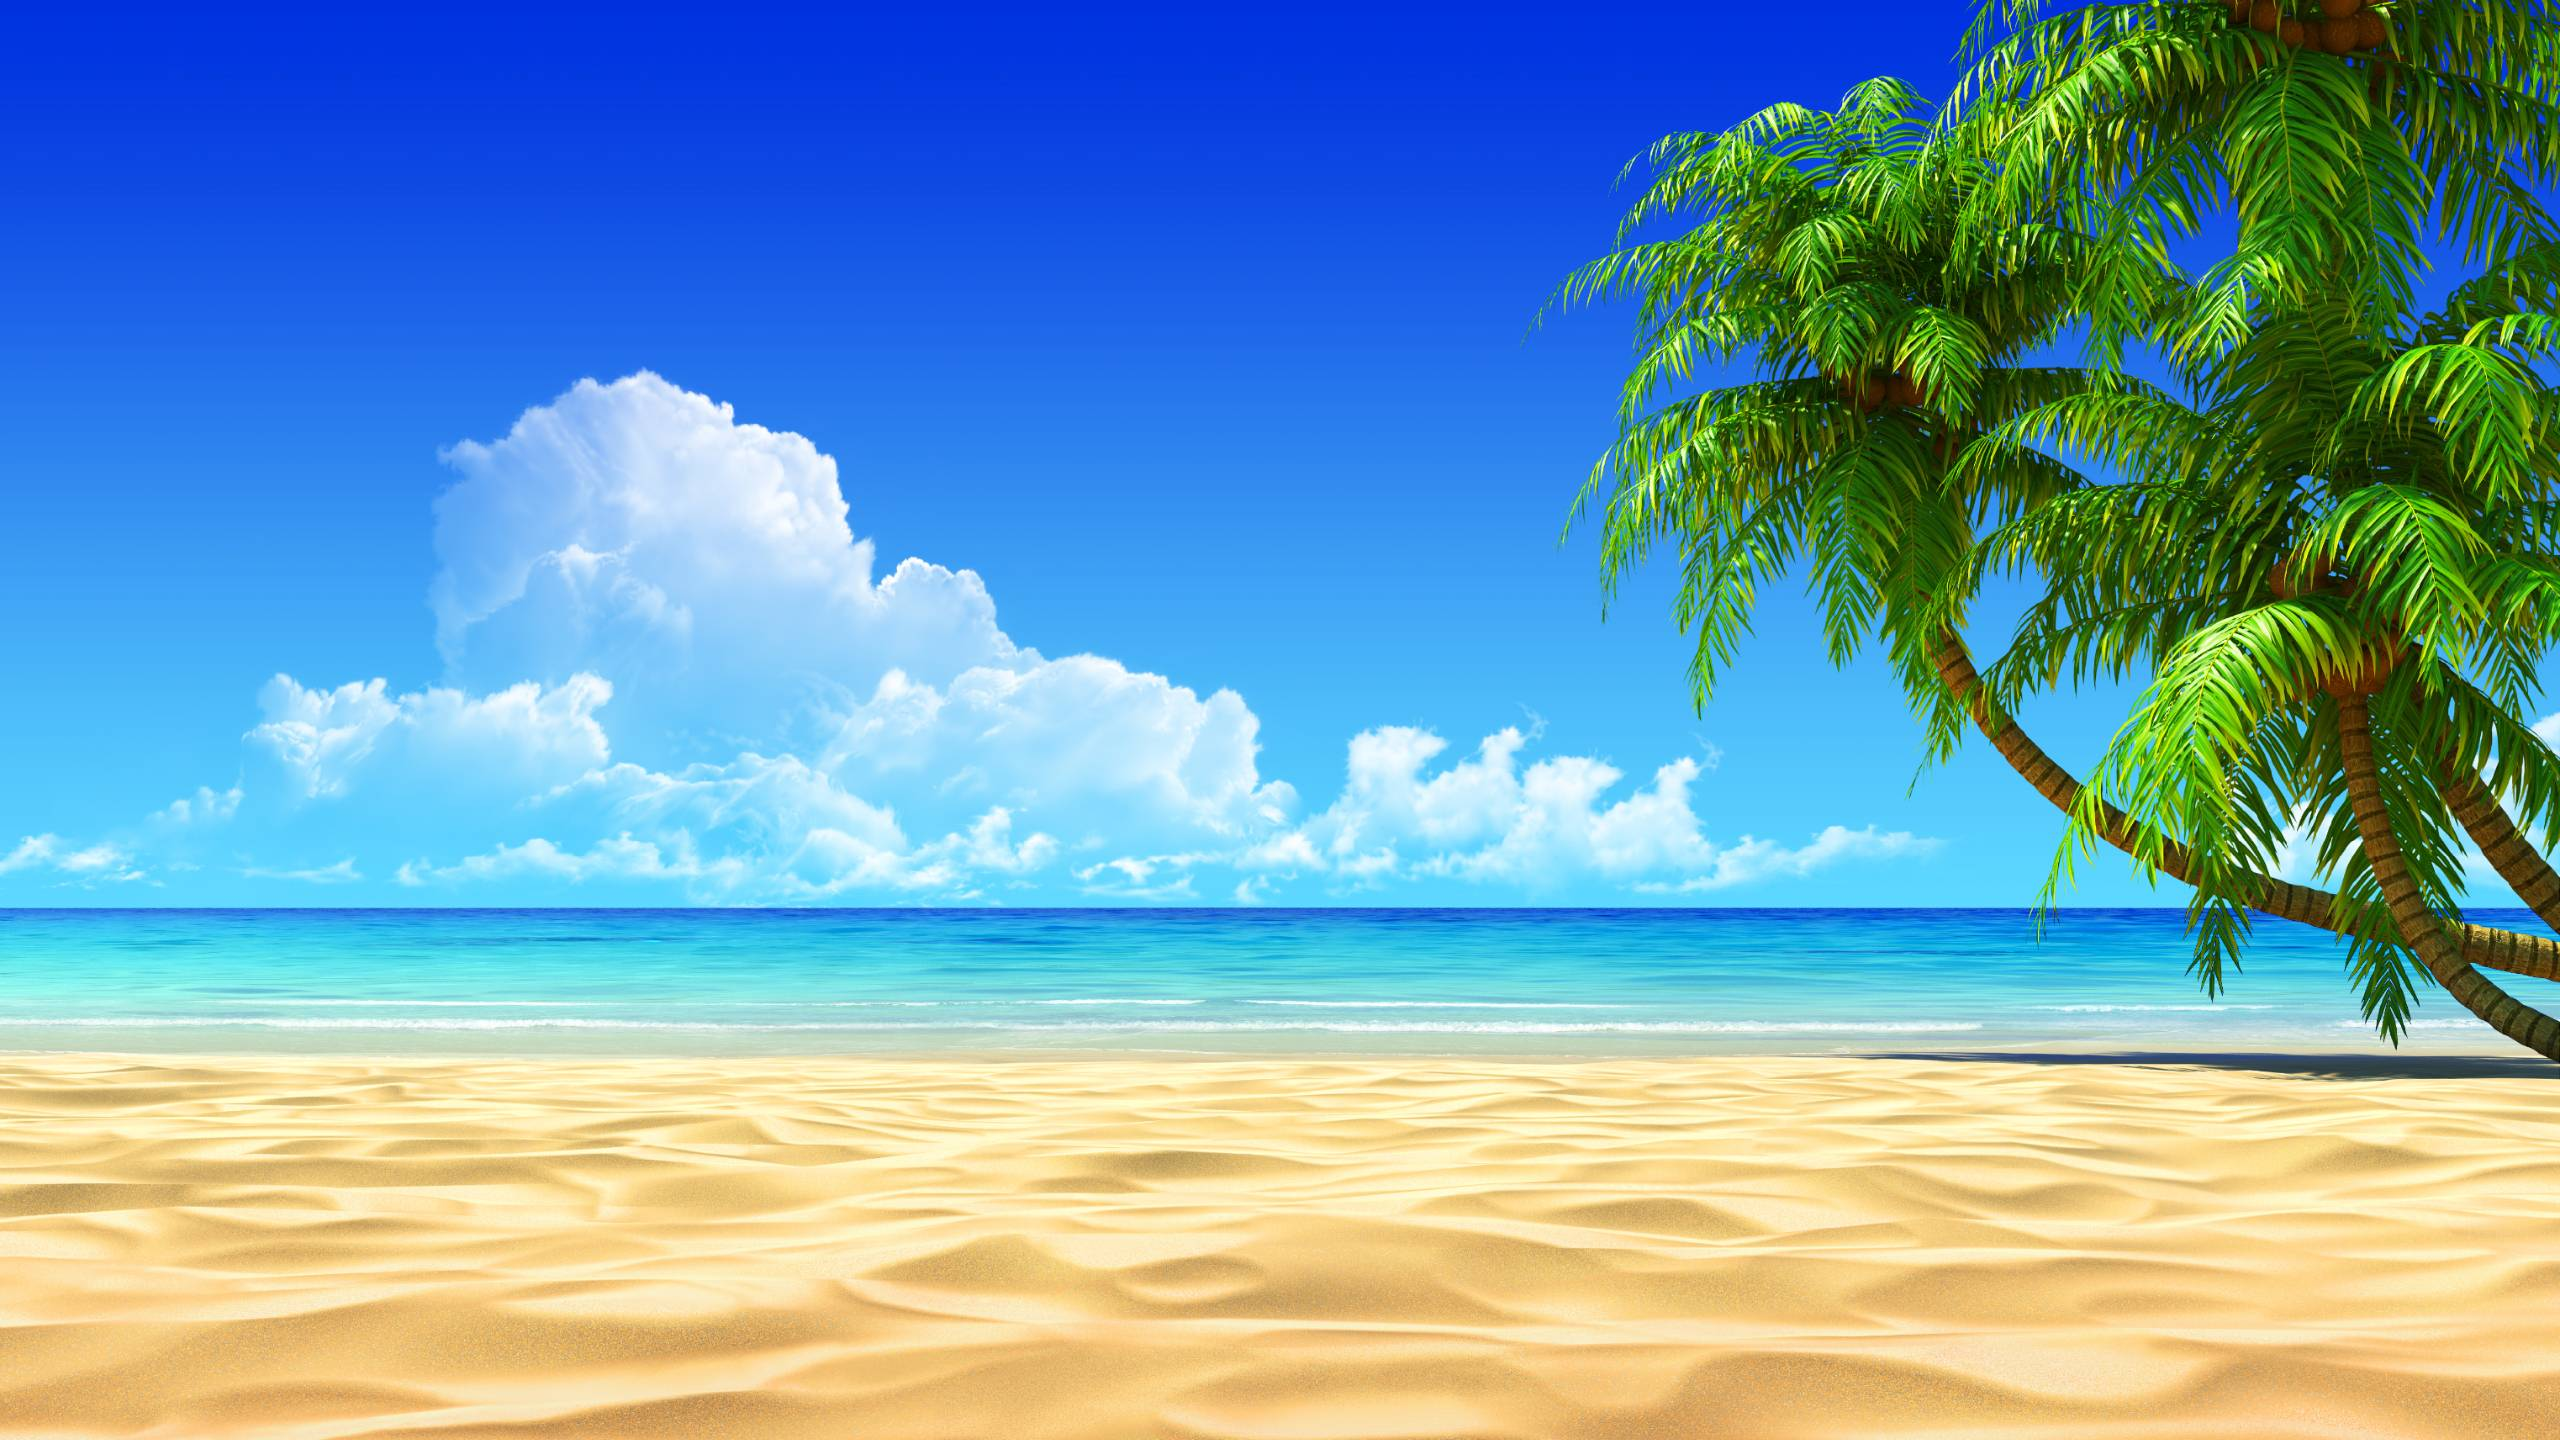 Tropical Desktop Backgrounds 2560x1440